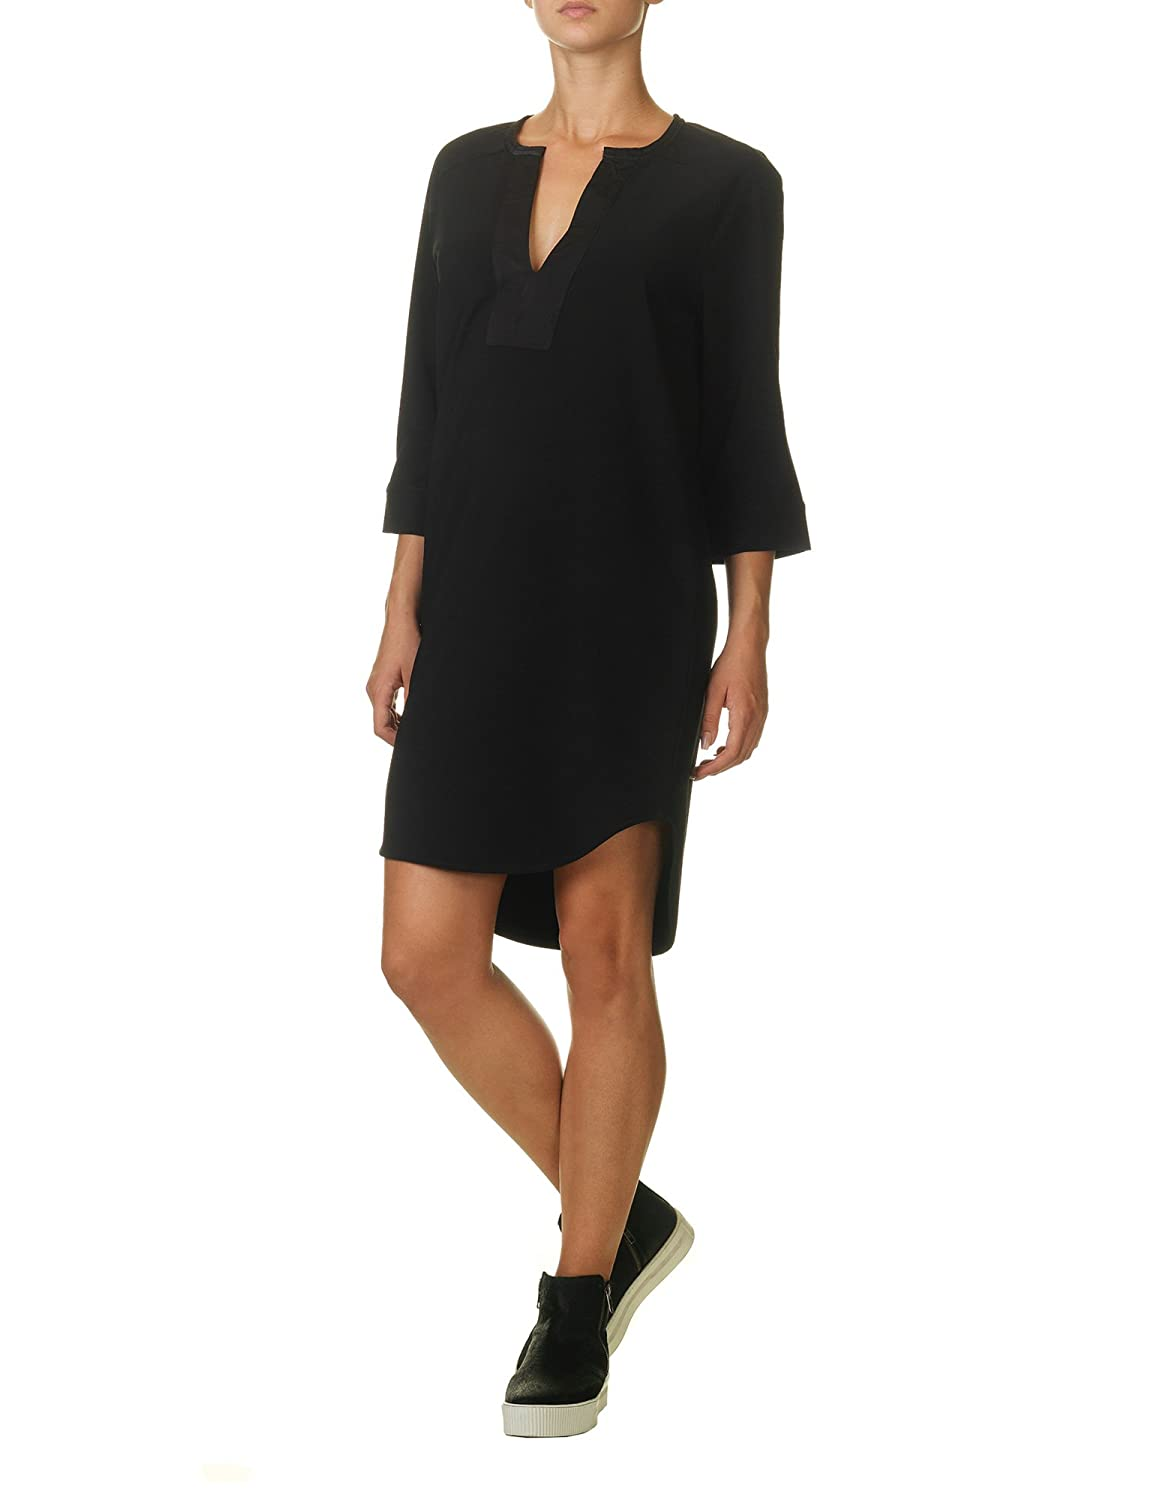 Soft Rebels Women's Plus Tunic Women's Black Dress